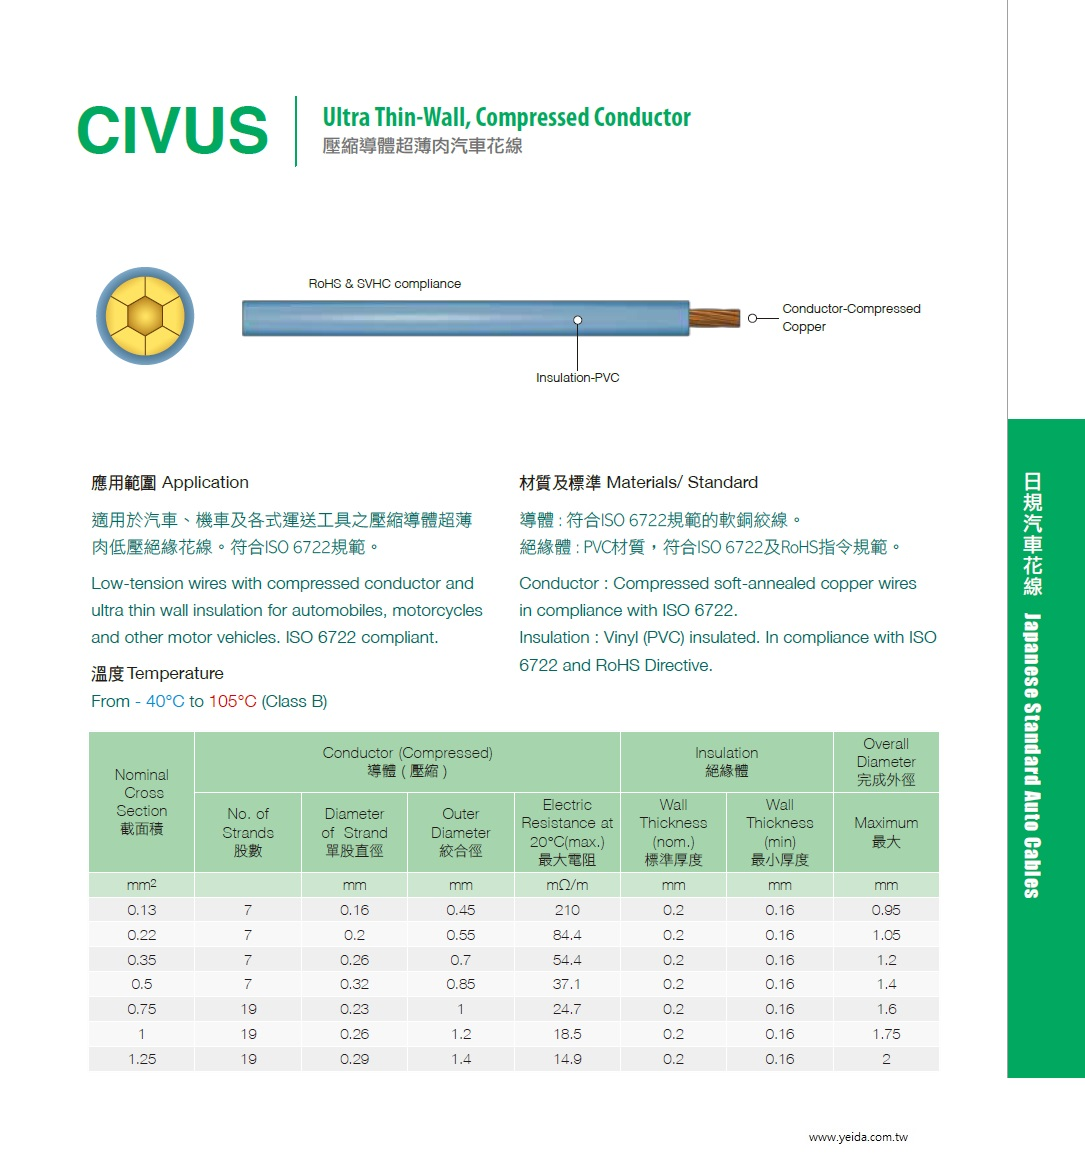 CIVUS Ultra Thin-Wall ISO 6722, Compressed Conductor 符合ISO 6722及RoHS規範 PVC, 壓縮導體超薄肉汽車花線產品圖